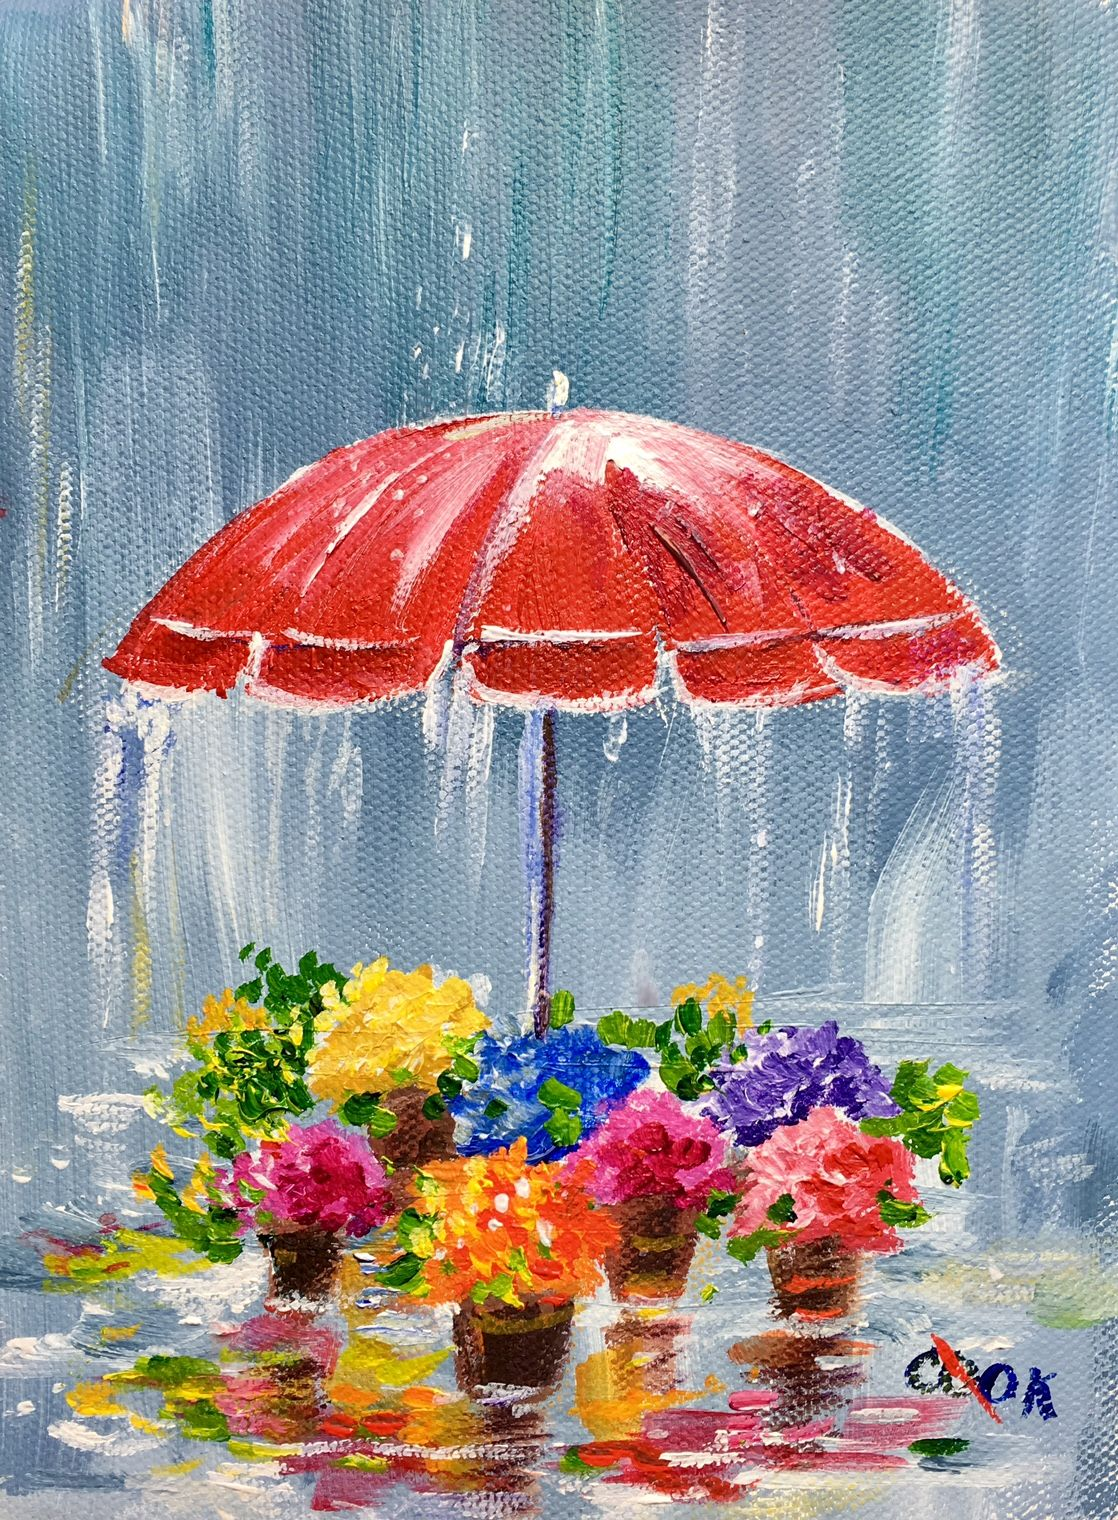 Quot Flowers In The Rain Quot Monday Live Youtube Jan 30th Live